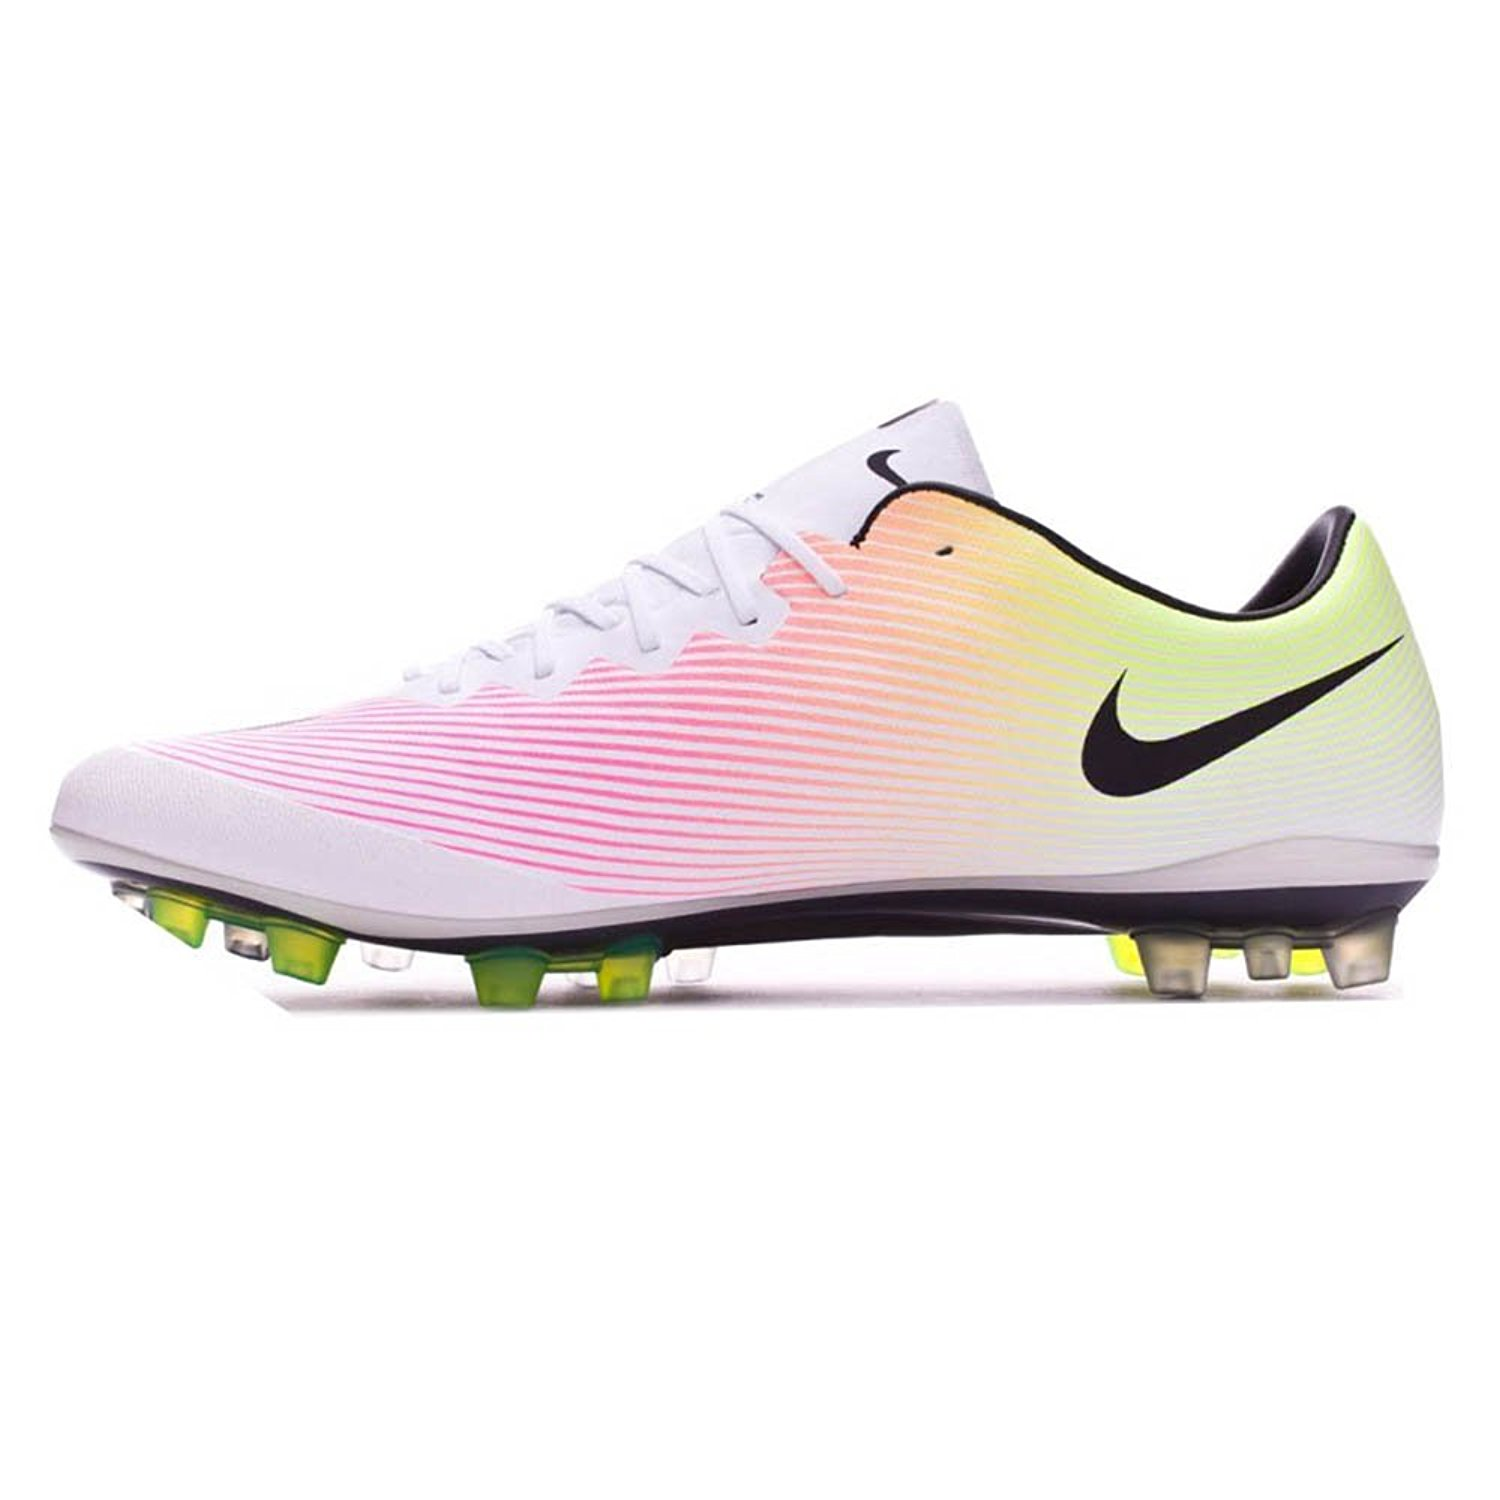 new arrivals 09a80 f2639 Get Quotations · Nike Mens Mercurial Vapor X AG-R Soccer Cleats 717139-107